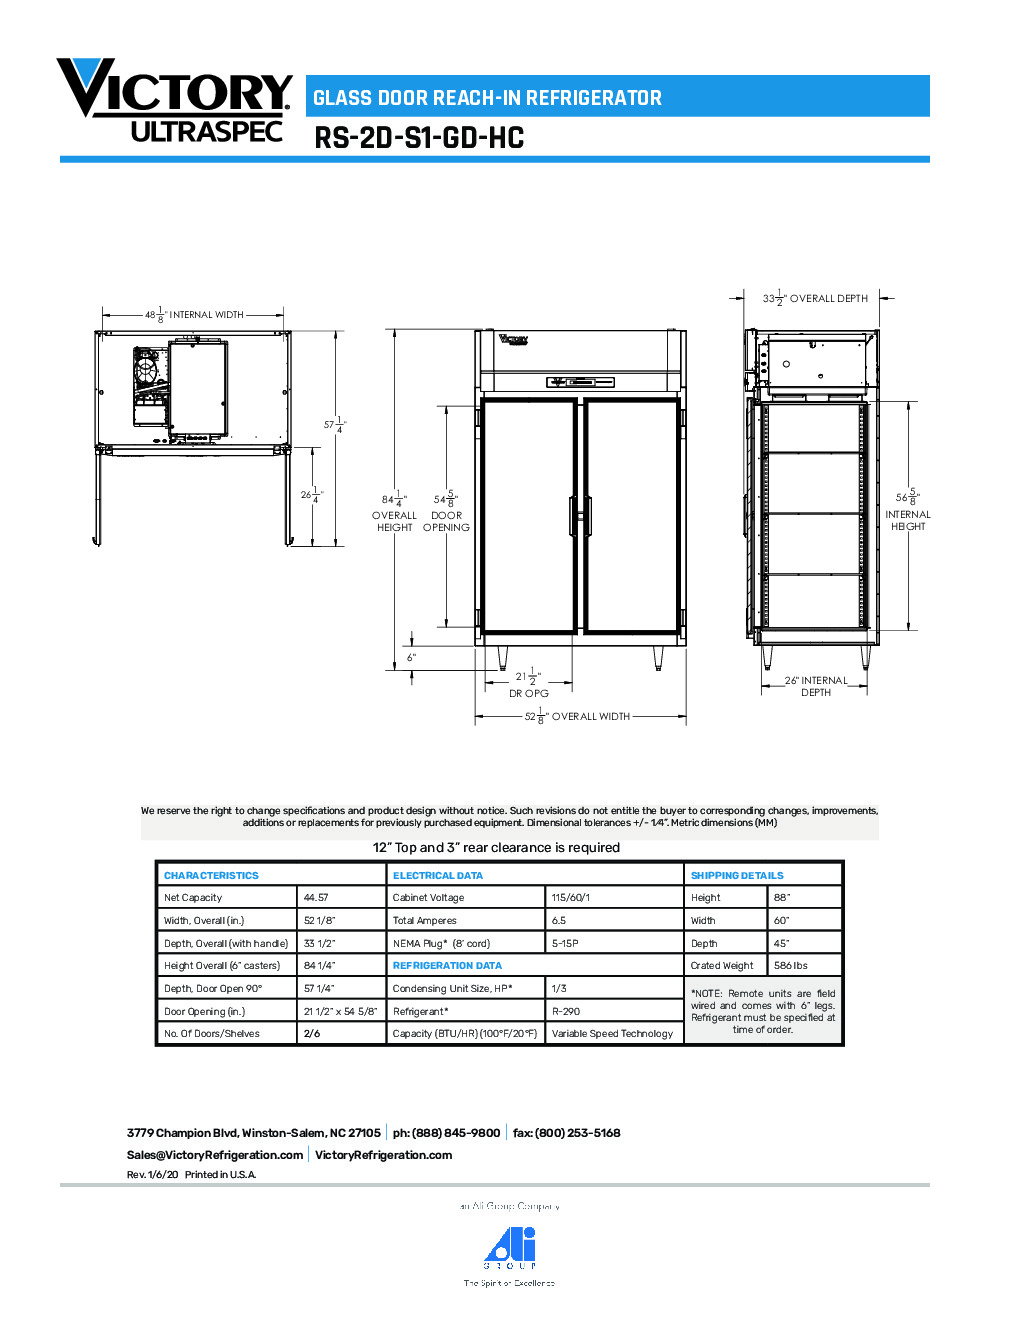 Victory RS-2D-S1-HC-GD Reach-In Refrigerator